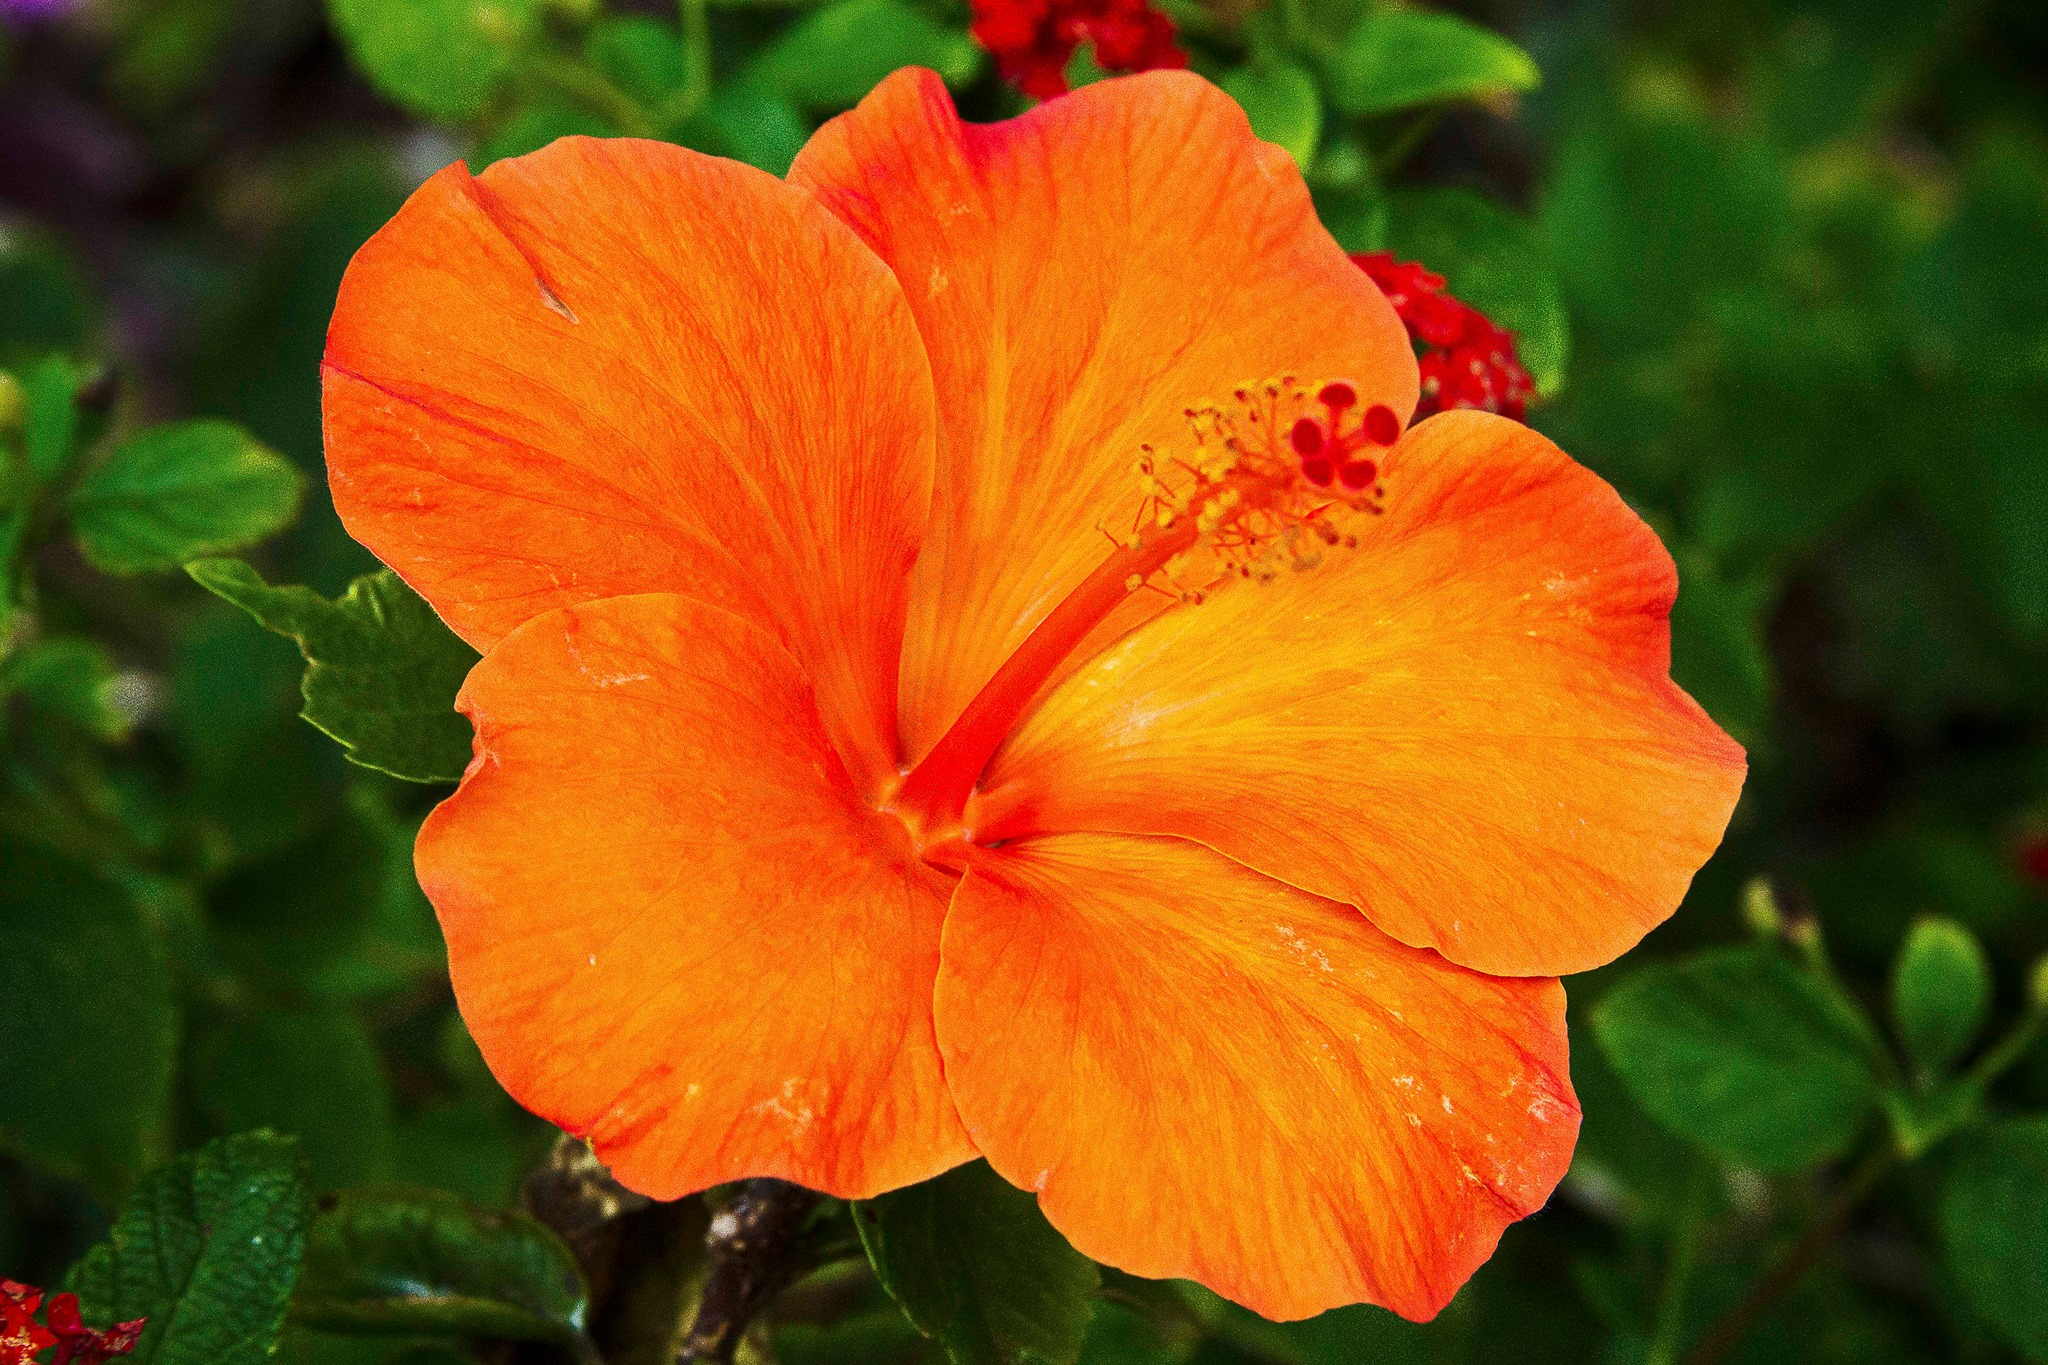 hibiscus archives  hawaii picture of the day, Beautiful flower